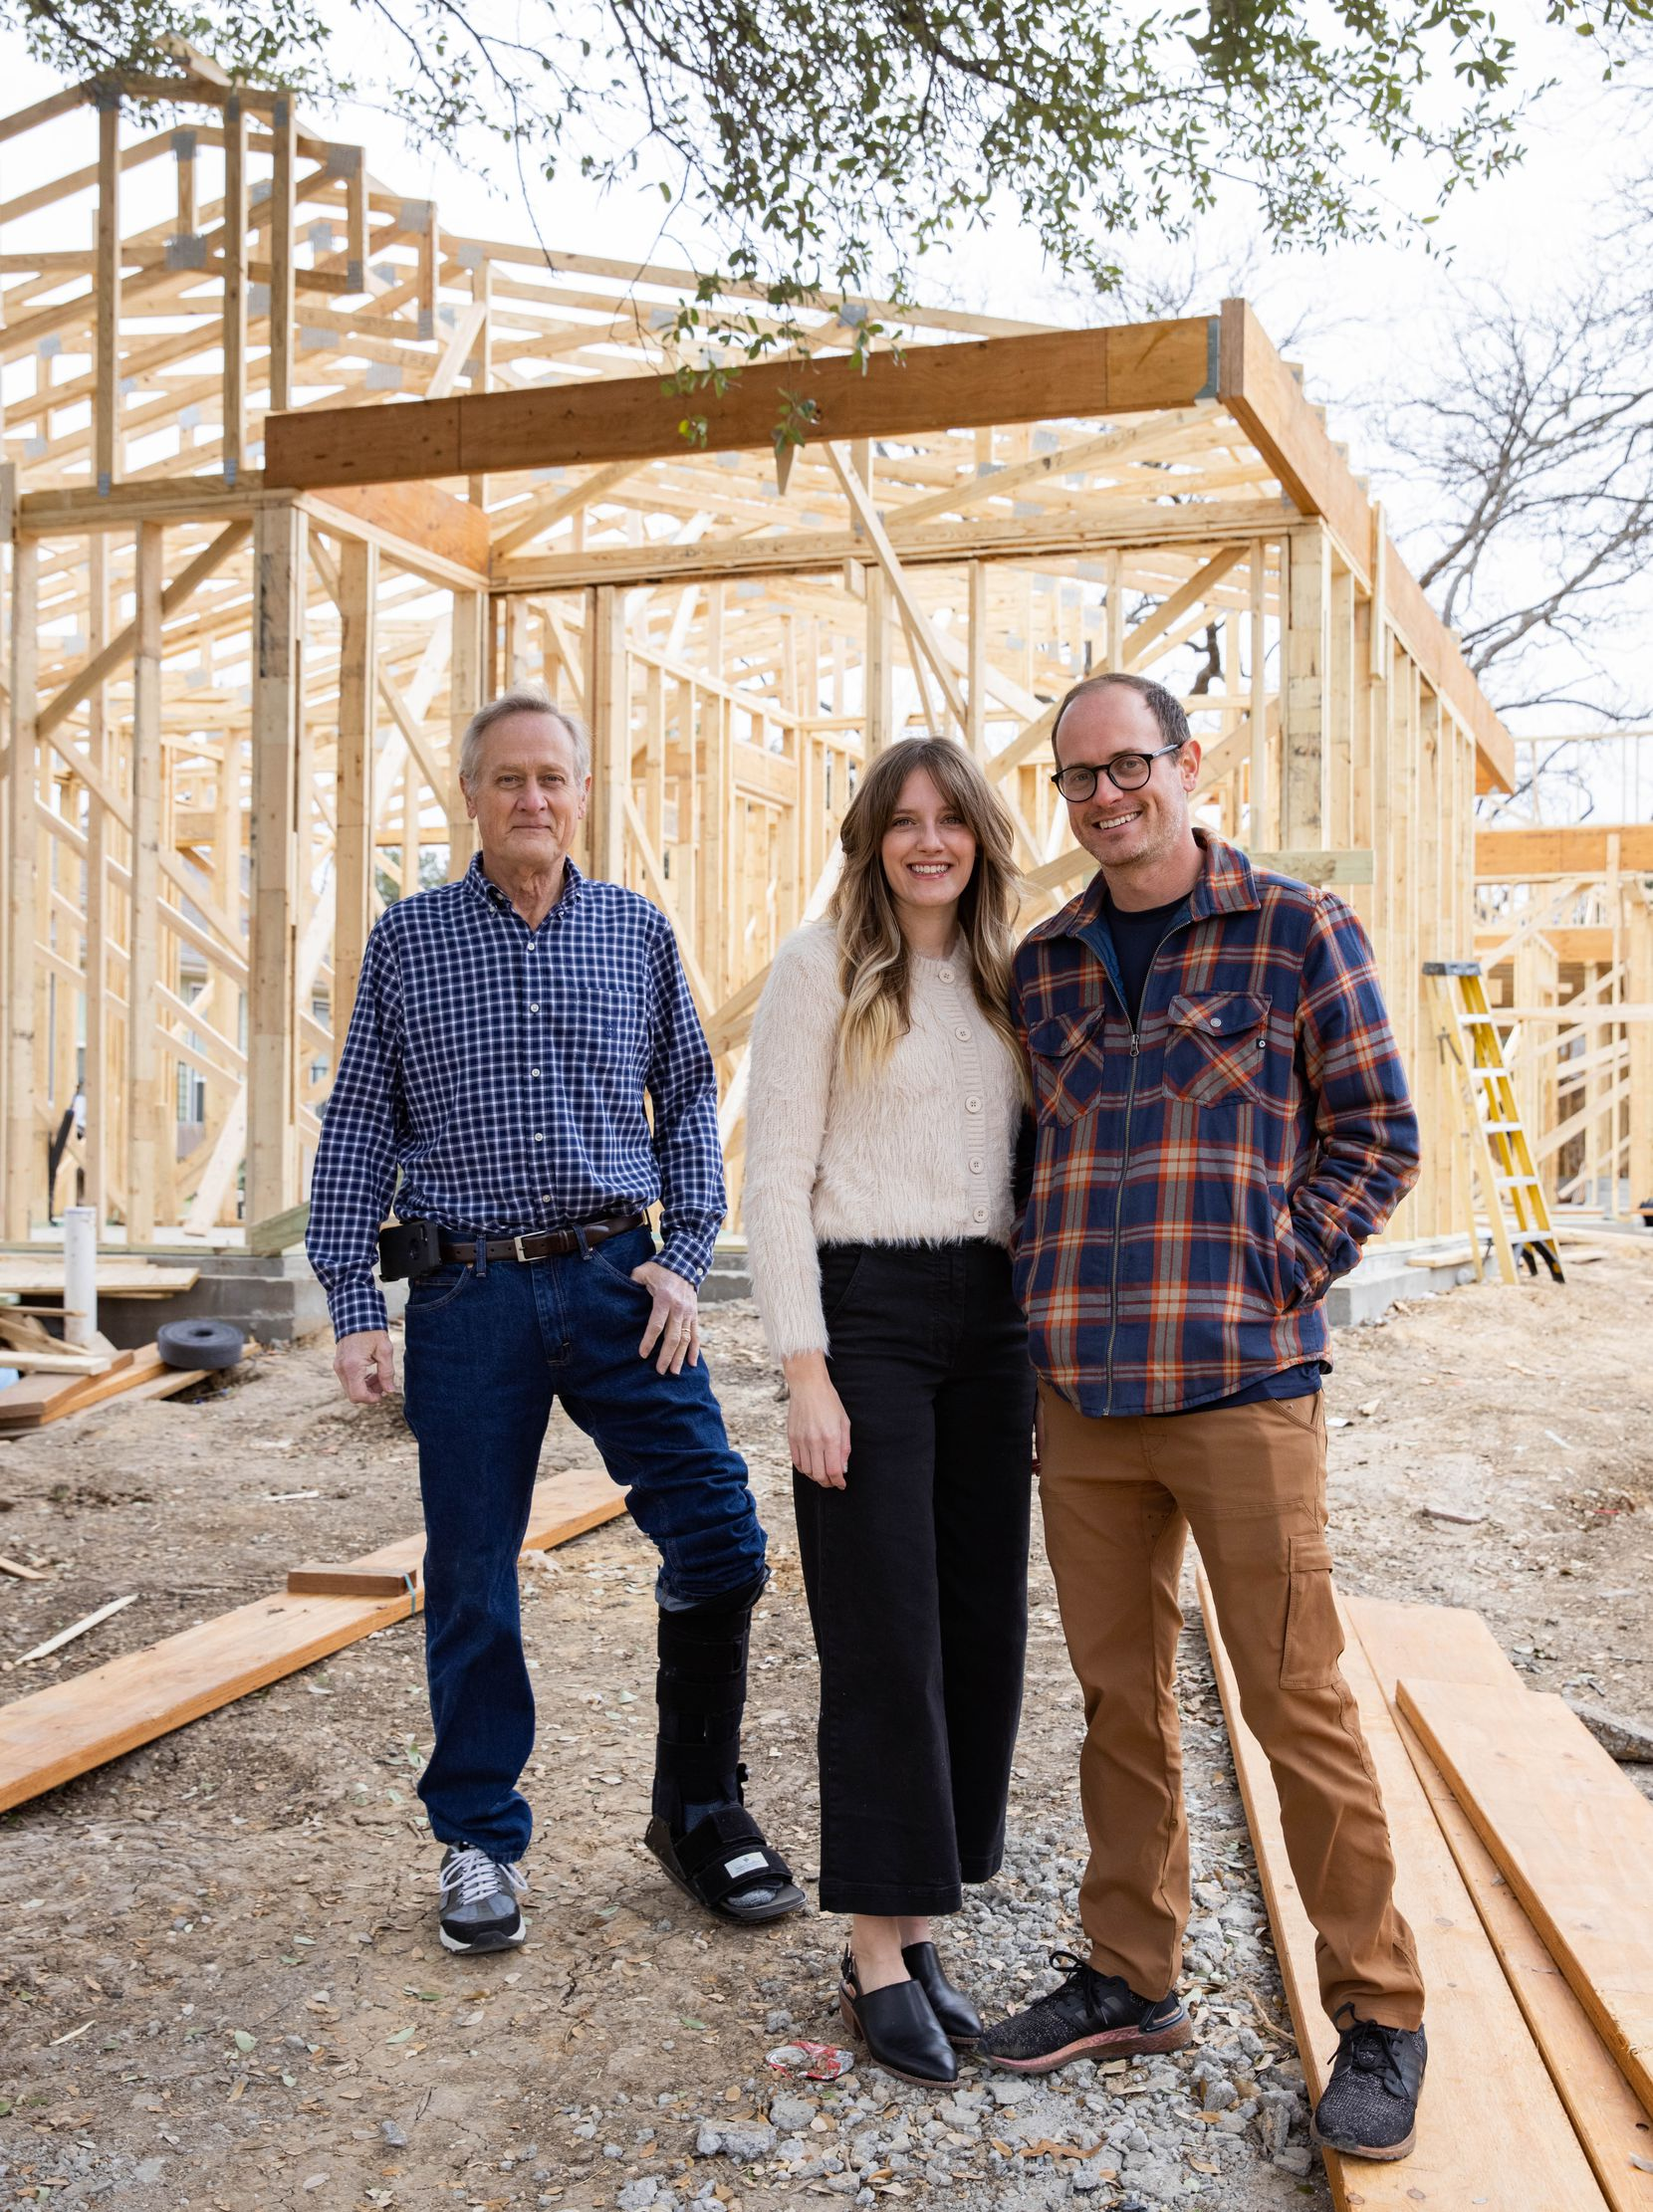 The Thurmond family pivoted their 130-plus-year-old family business, Nitsche, during the pandemic from an event construction business to home renovations.